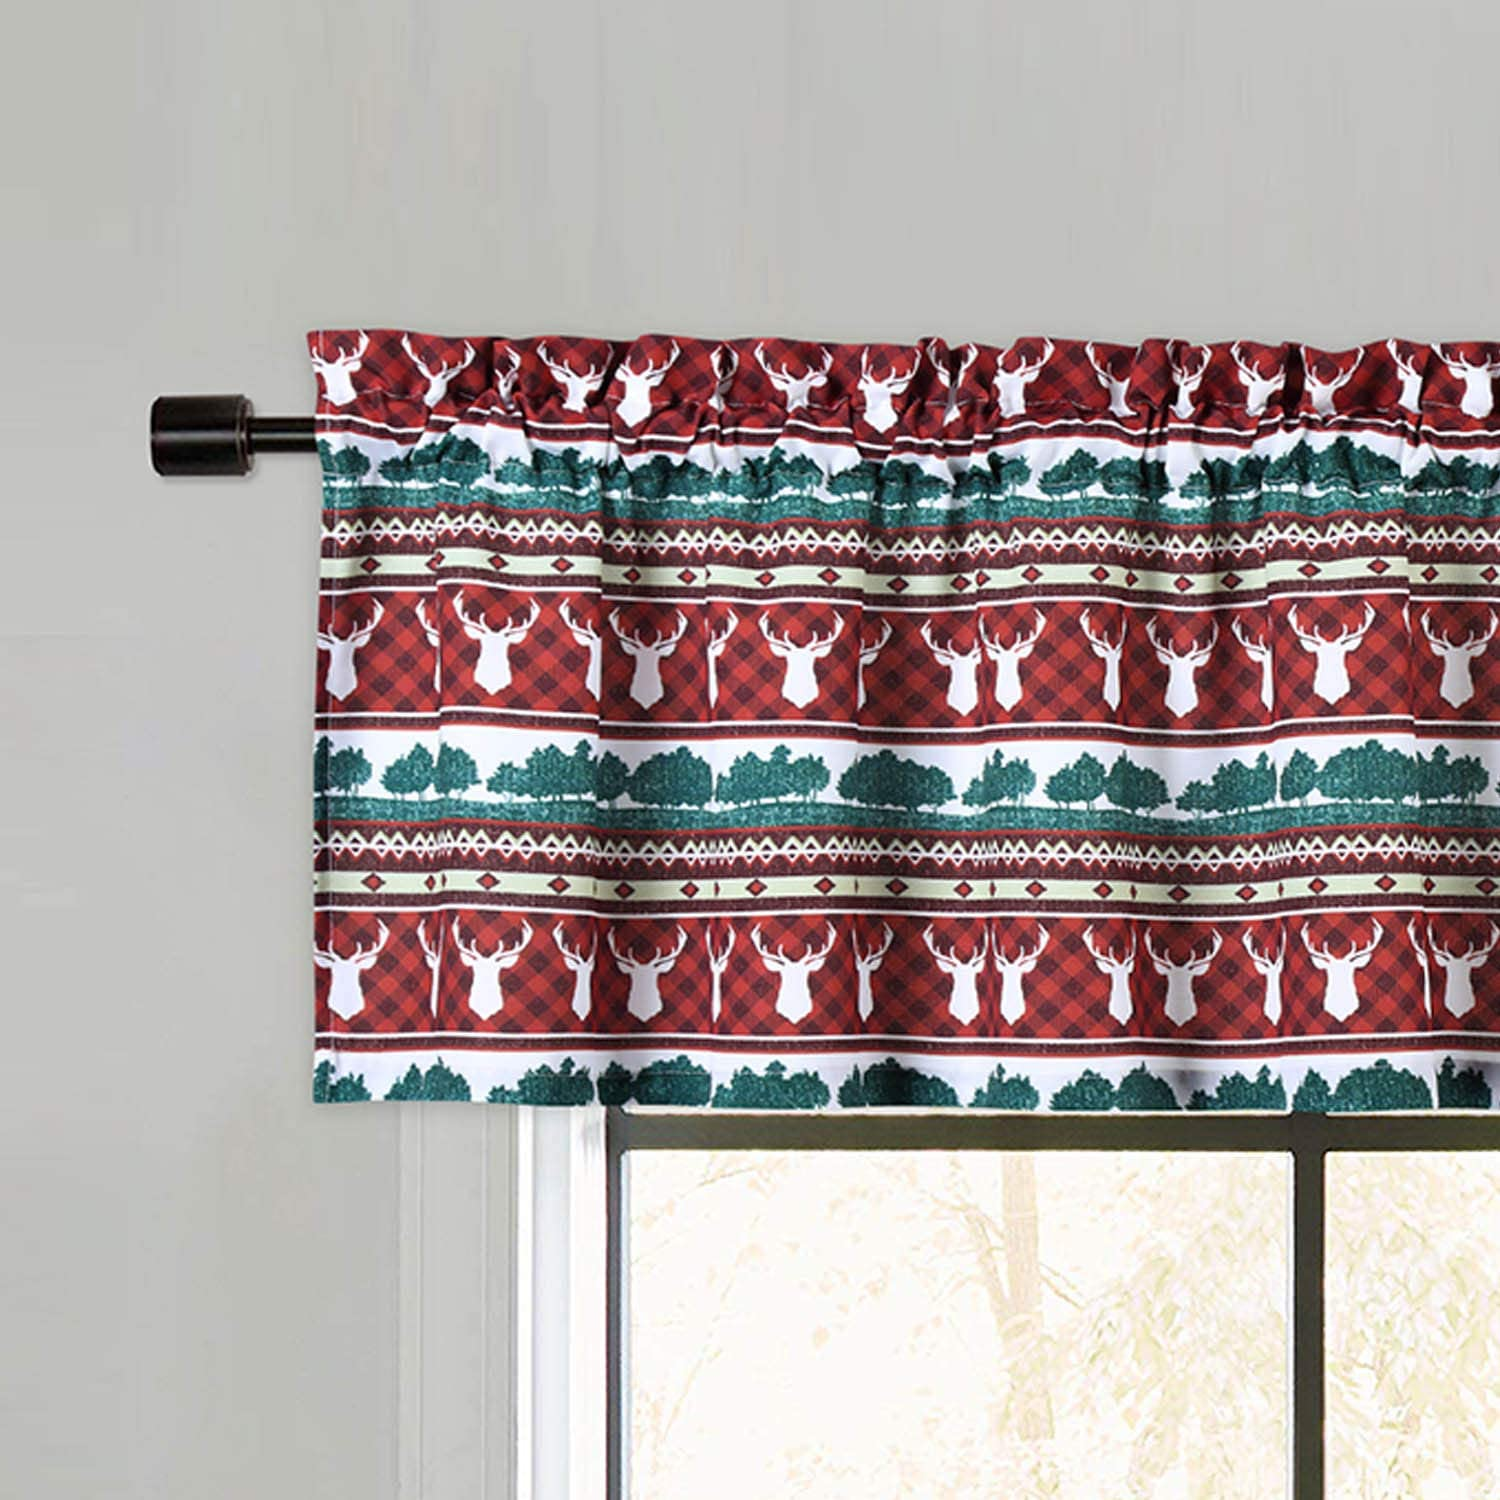 CAROMIO Valance Curtains for Kitchen, Farmhouse Christmas Home Decor Valances for Kitchen Cafe Bathroom Windows, Spice Brown, 55x15 Inch